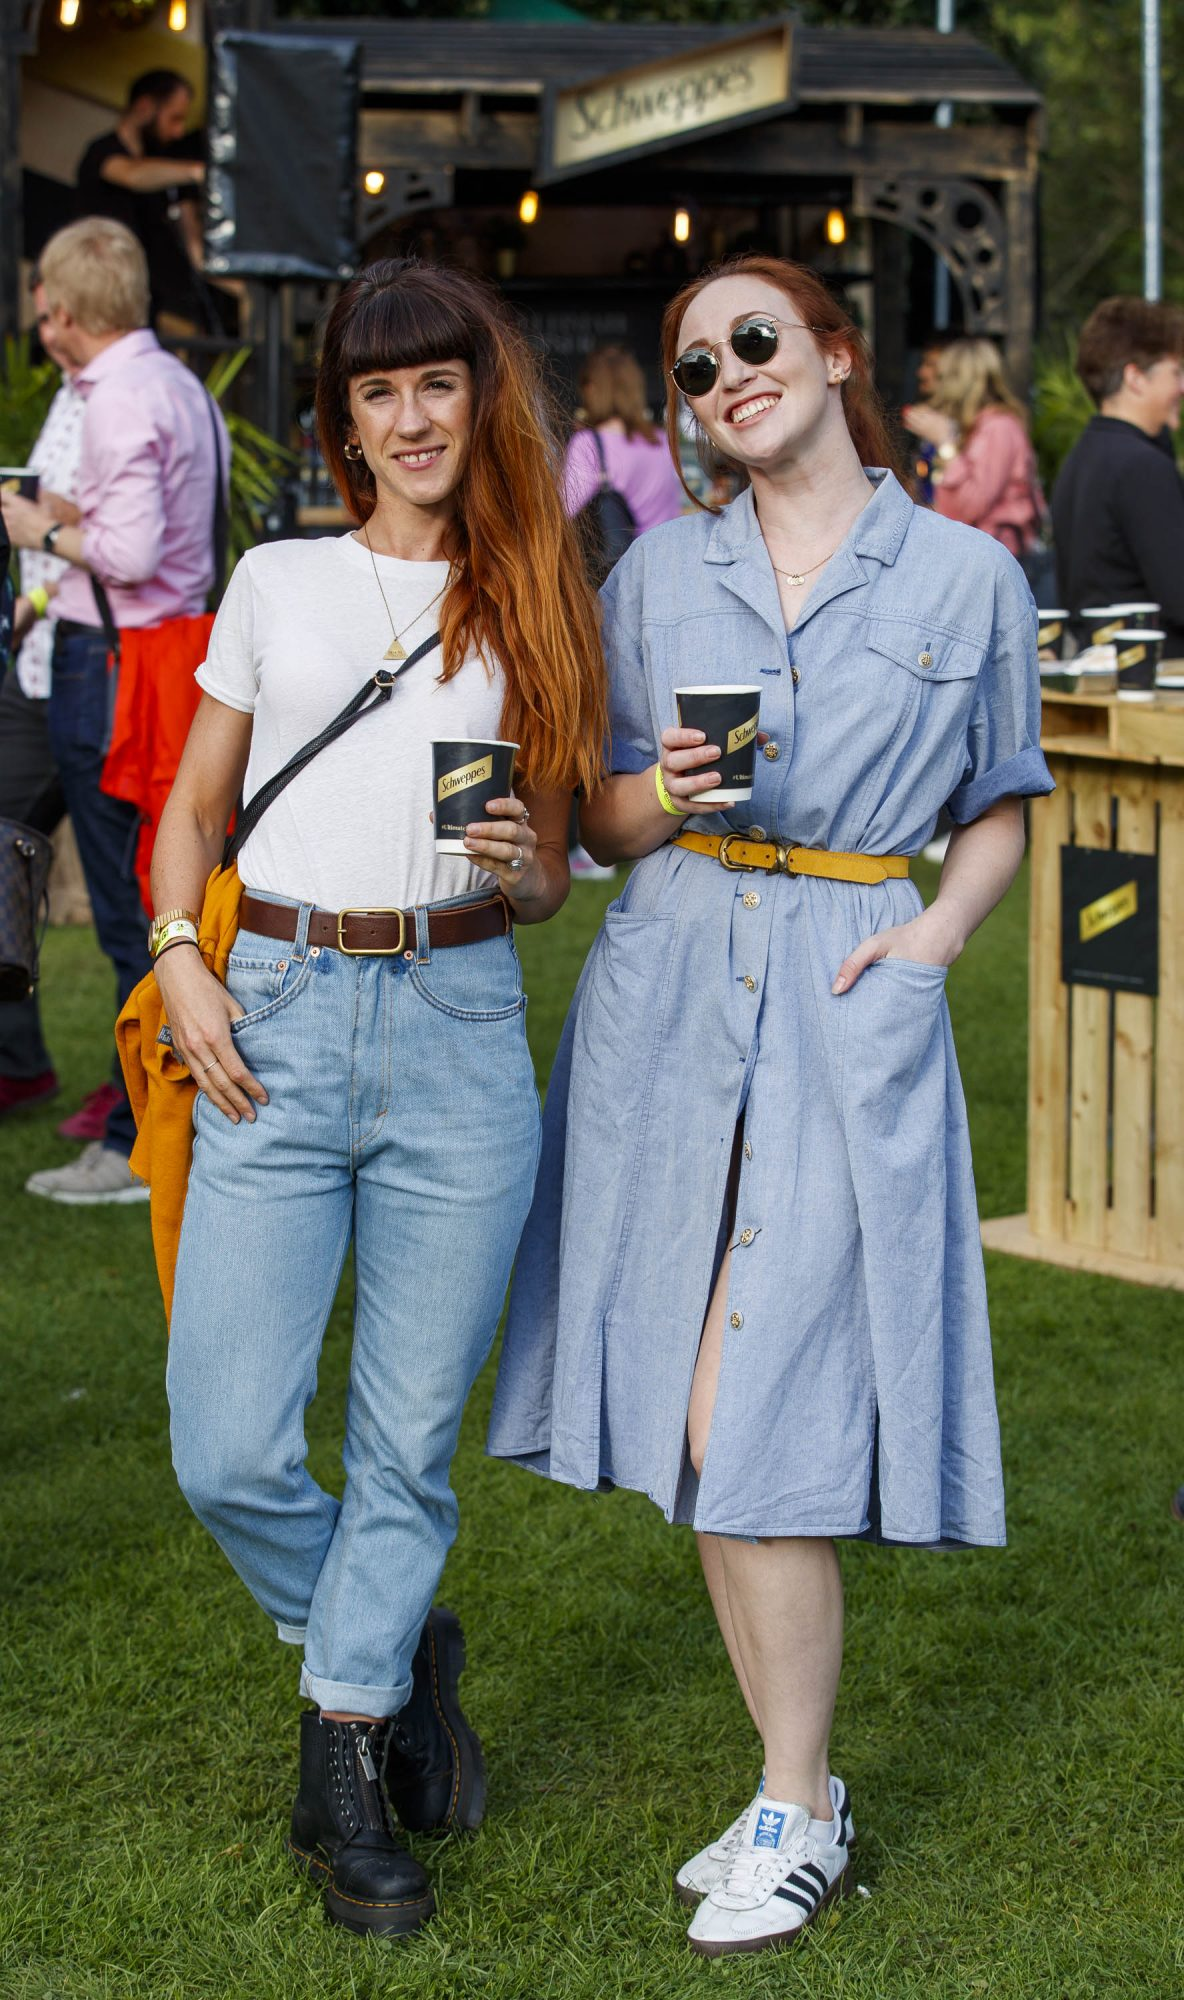 Aoife Martinho and January Russell Winters, at the Schweppes #UltimateMixer Sessions at The Big Grill festival in Herbert Park, Dublin, where guests sipped on expertly crafted cocktails and enjoyed live music mixes from Irish bands and DJs. Picture: Andres Poveda